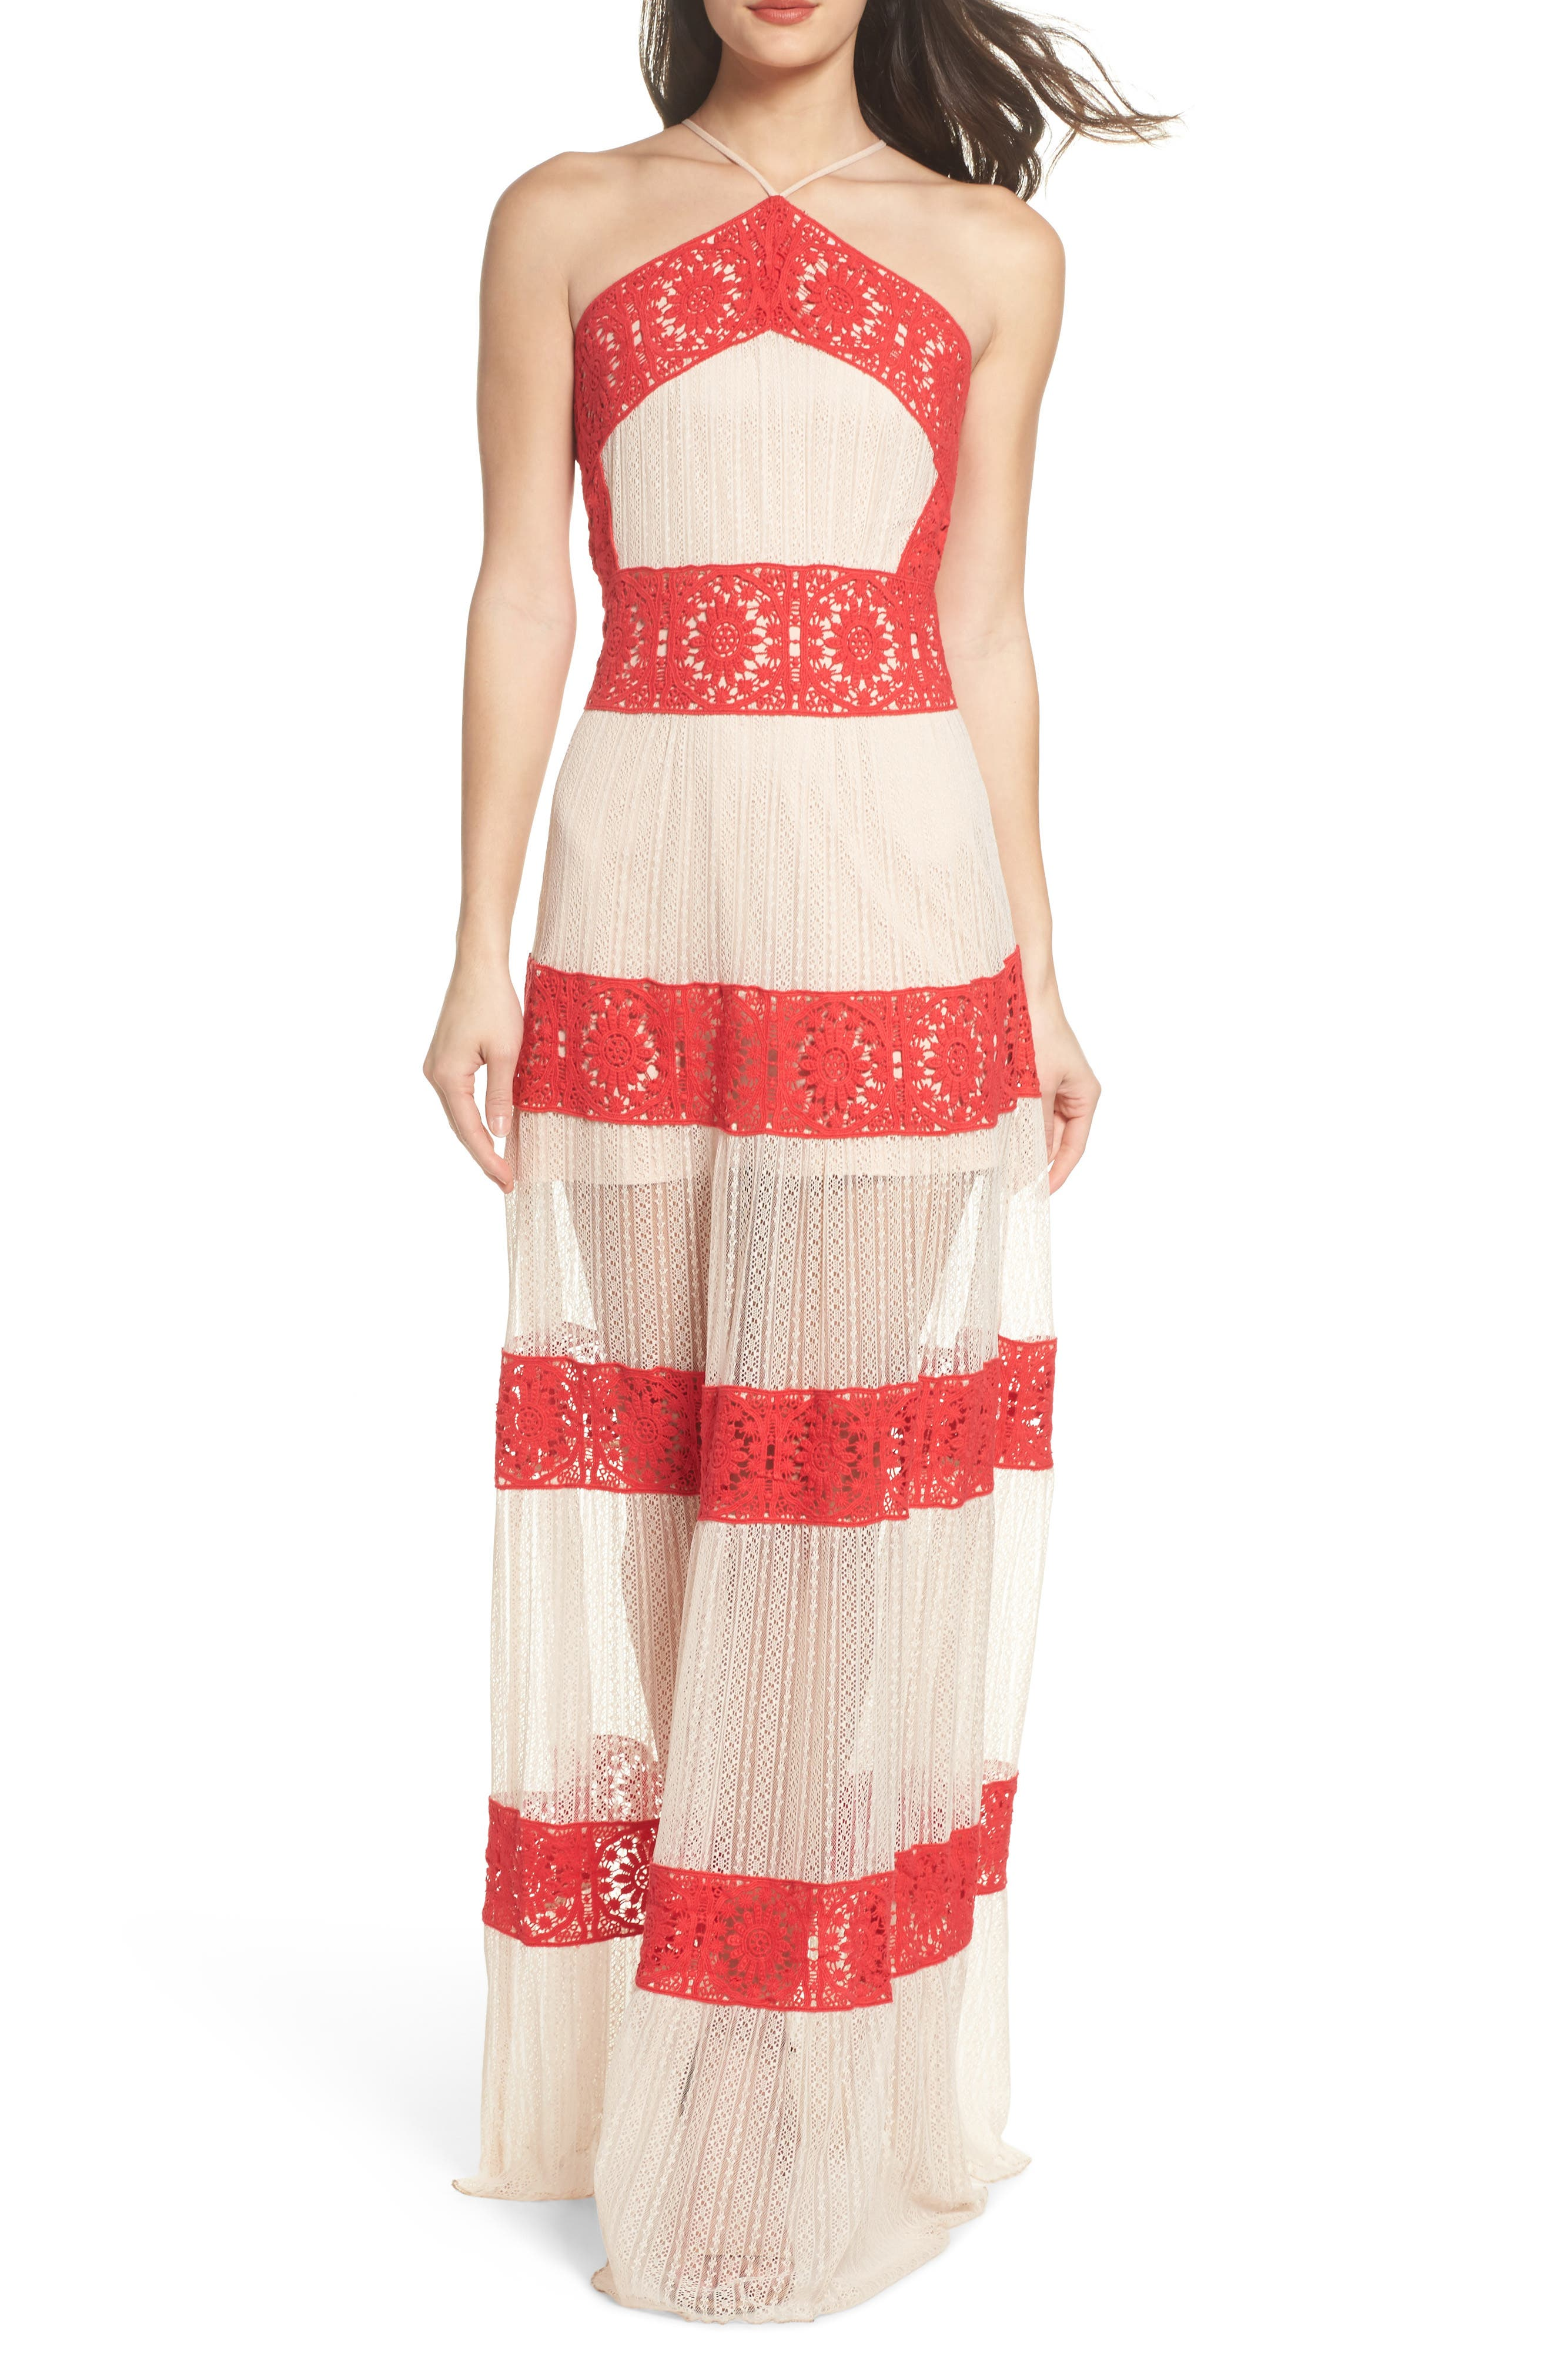 Ophelia Two-Tone Lace Maxi Dress,                         Main,                         color, Red/ Nude